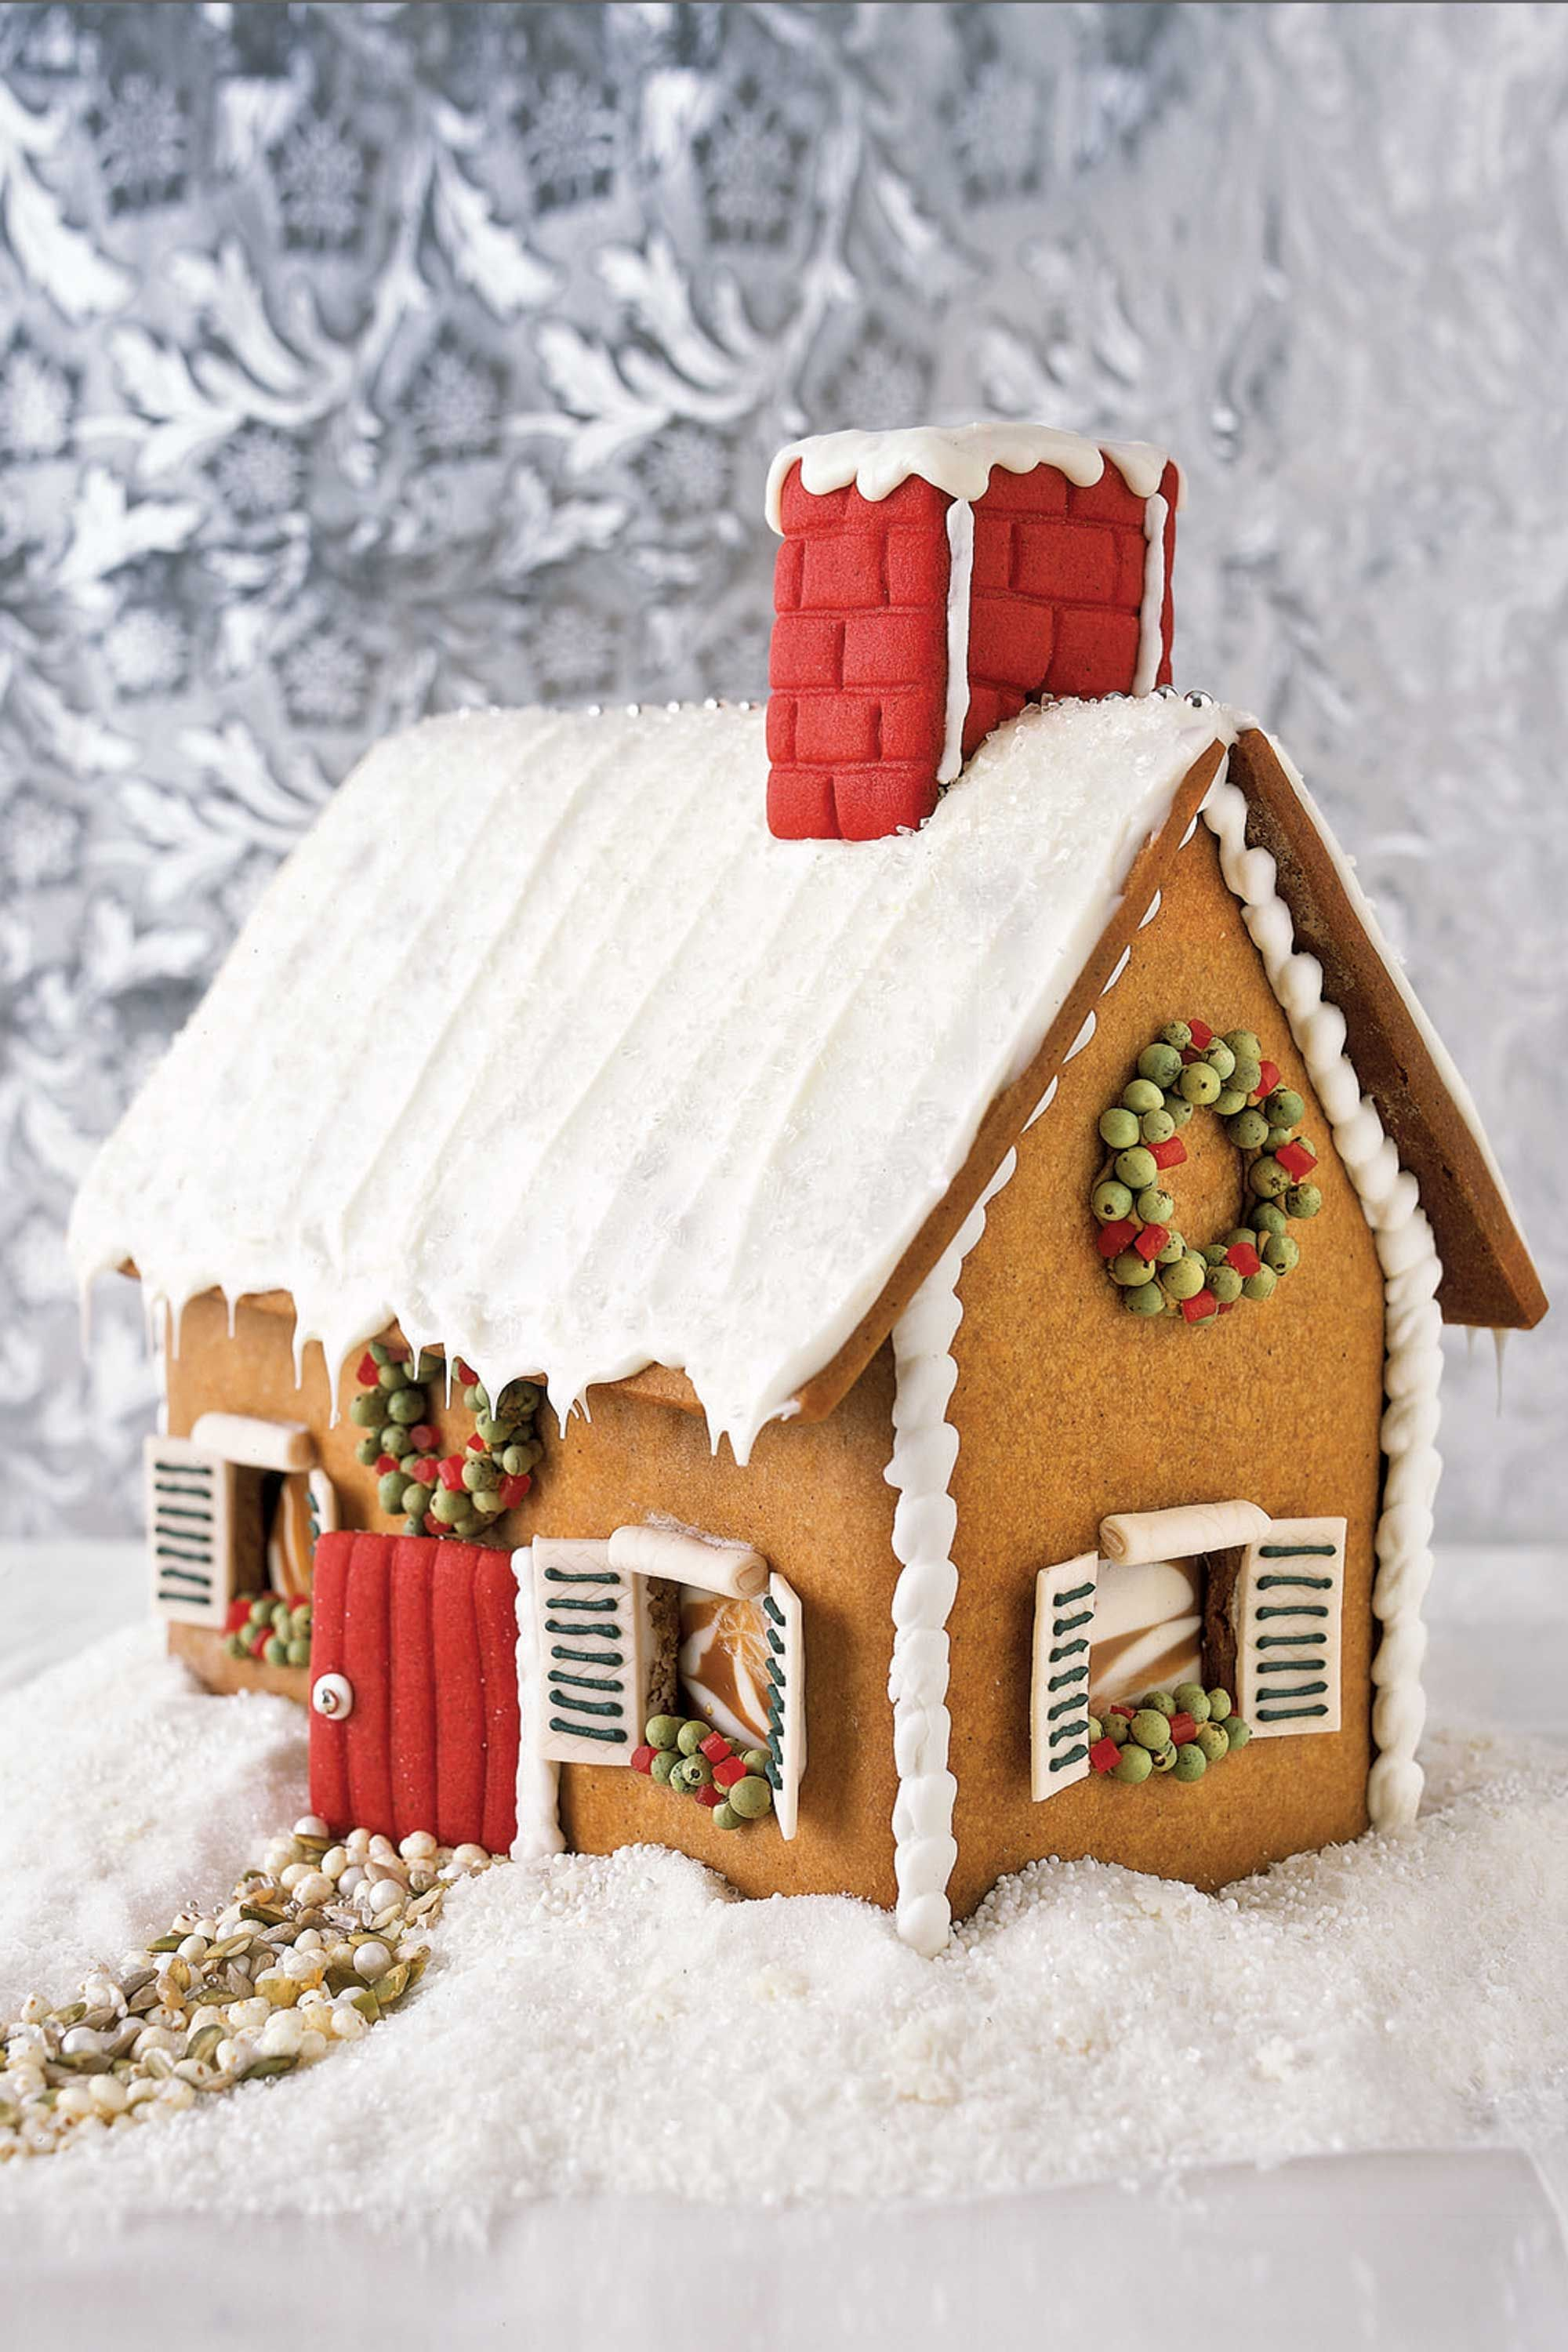 32 cute gingerbread house ideas pictures how to make a gingerbread house